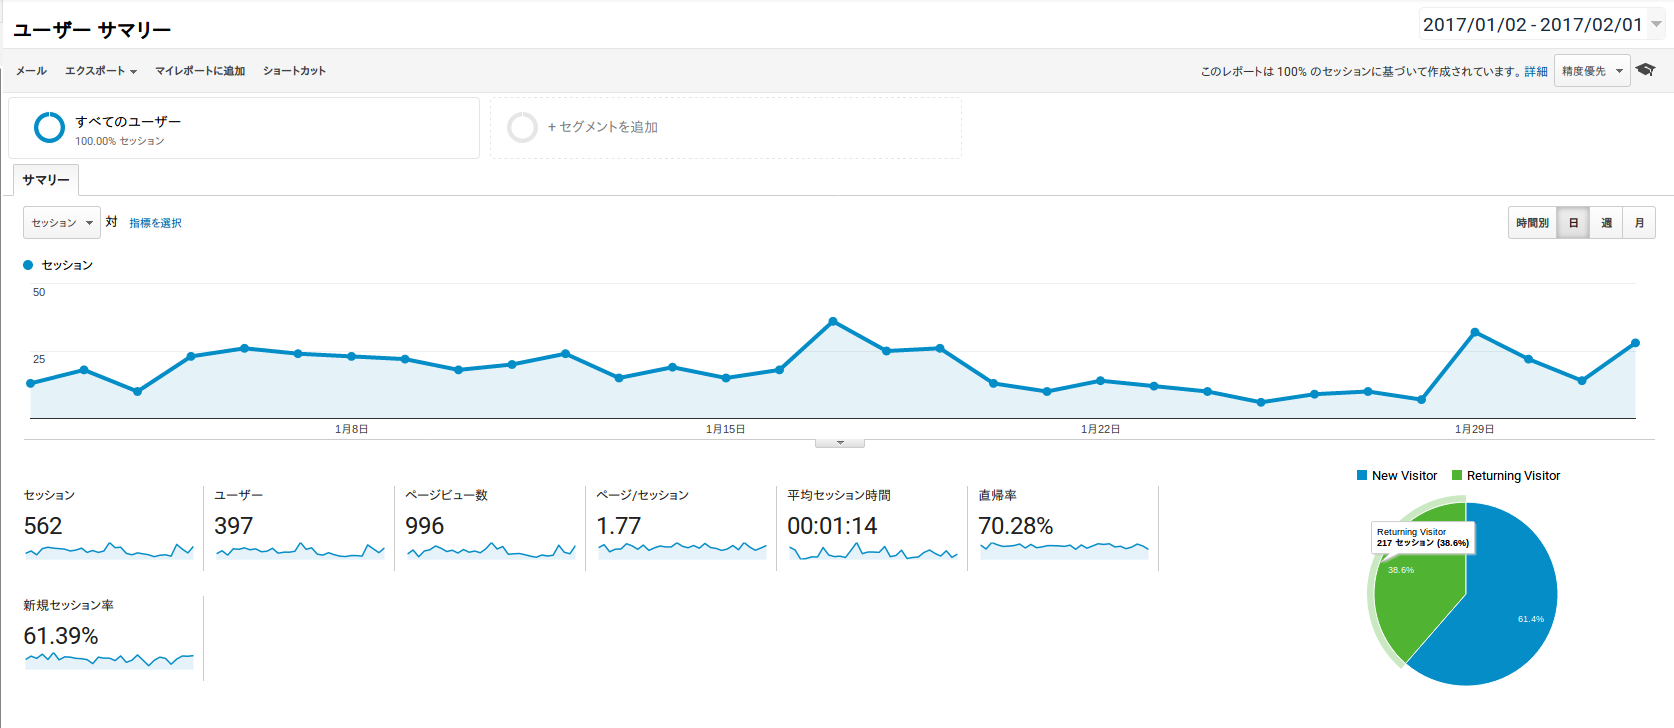 Google Analytic traffic report for Koipun for January